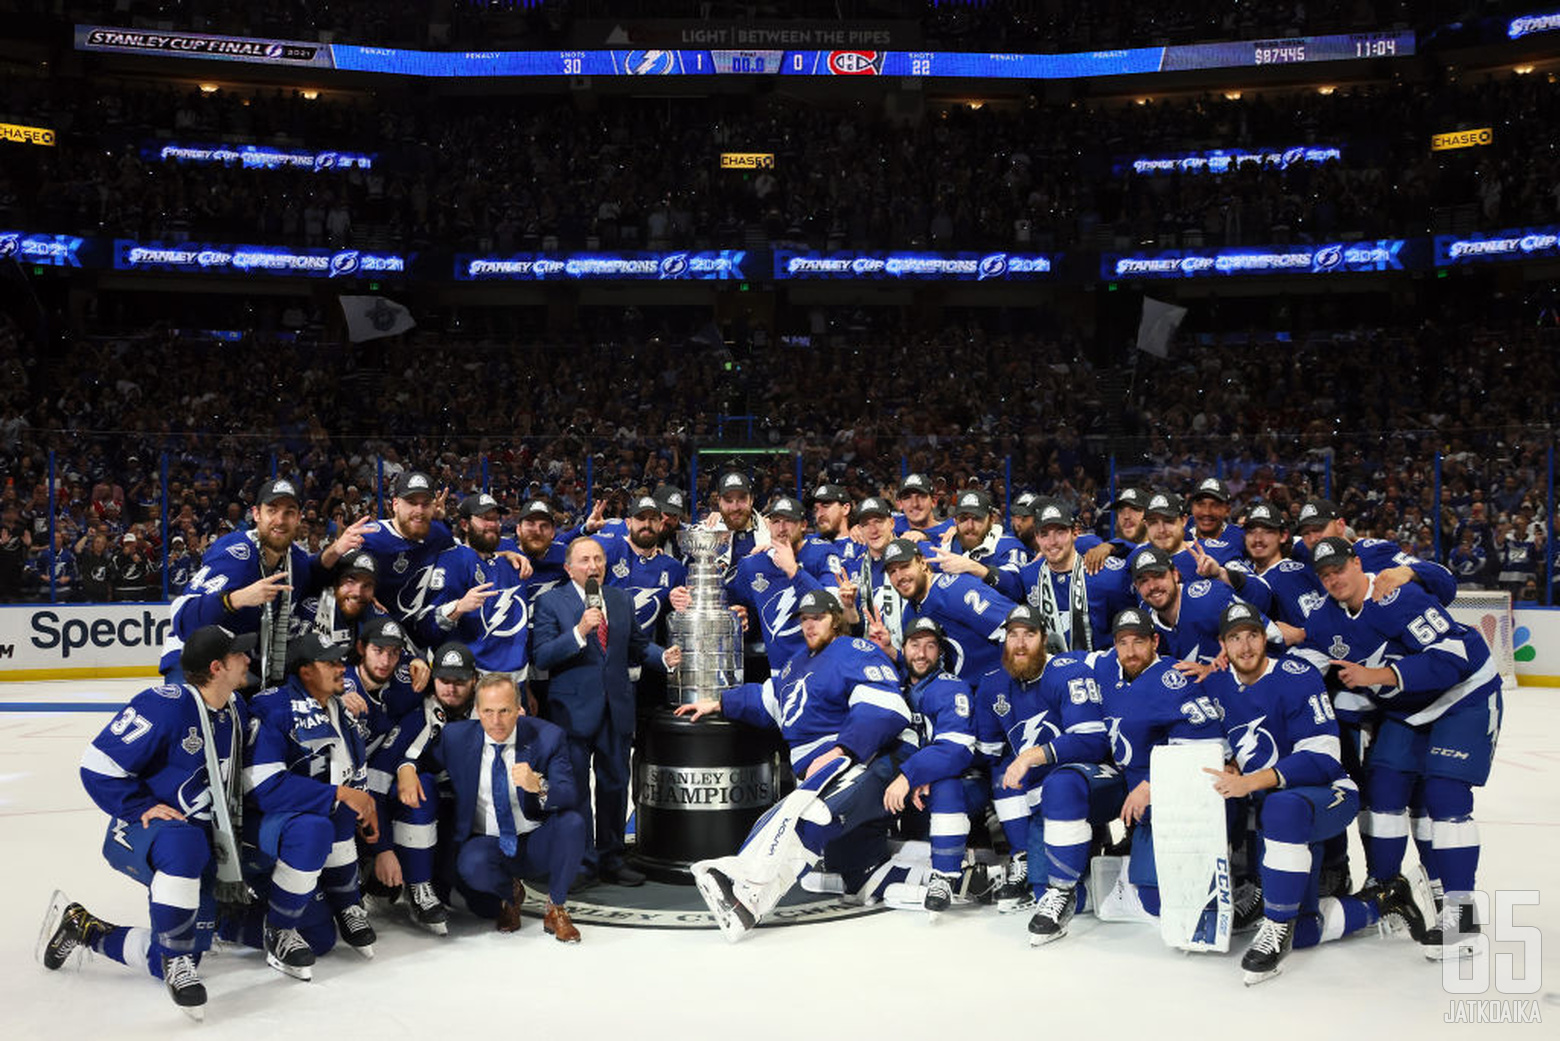 TAMPA, FLORIDA - JULY 07:  The Tampa Bay Lightning pose with the Stanley Cup after defeating the Montreal Canadiens 1-0 in Game Five to win the 2021 NHL Stanley Cup Final at Amalie Arena on July 07, 2021 in Tampa, Florida. (Photo by Bruce Bennett/Getty Im